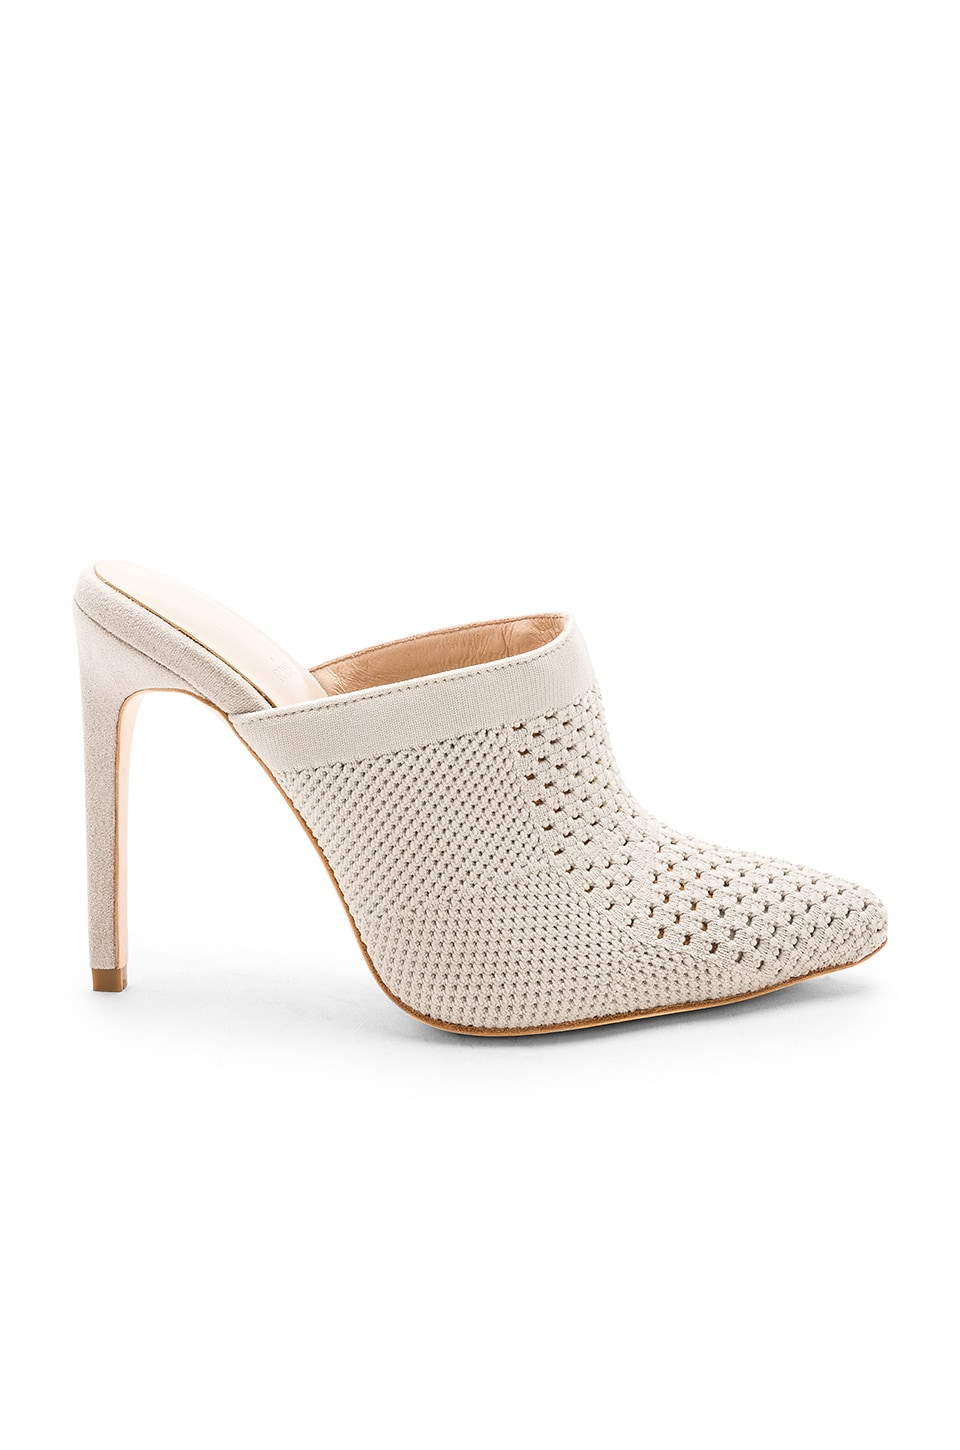 RAYE x House of Harlow 1960 Sparrow Mule in Oatmeal